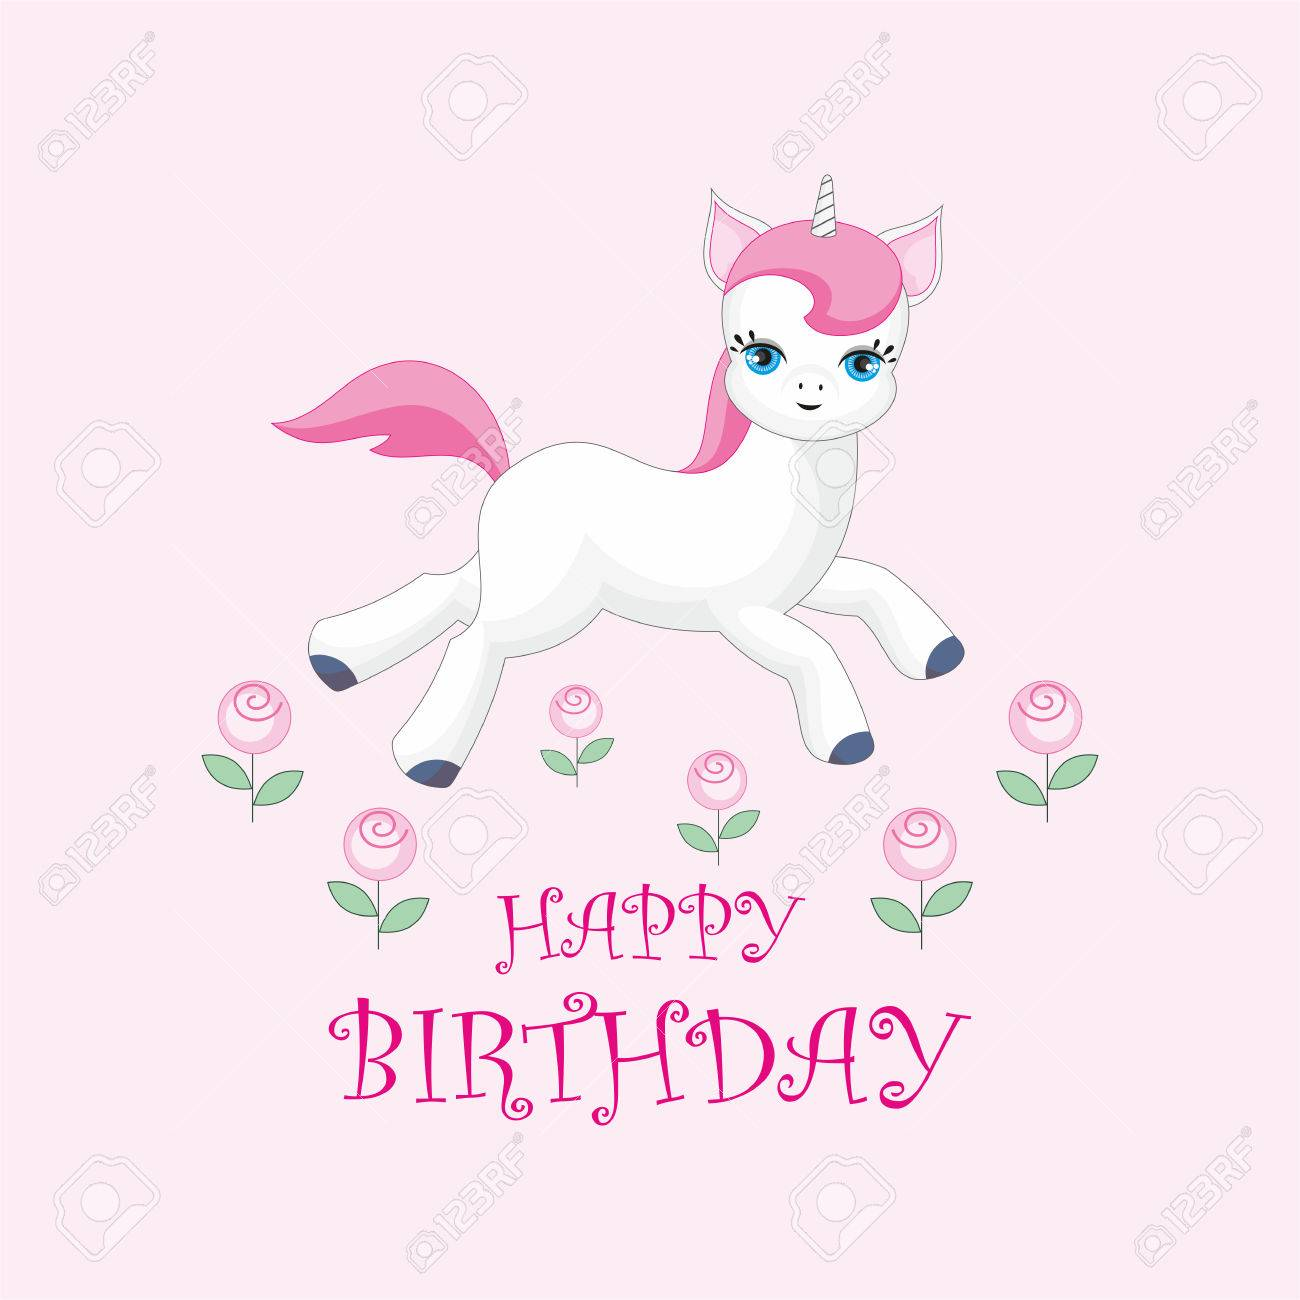 Happy Birthday Greeting Card With The Image Of Cute Unicorn Royalty Free Cliparts Vectors And Stock Illustration Image 77414662